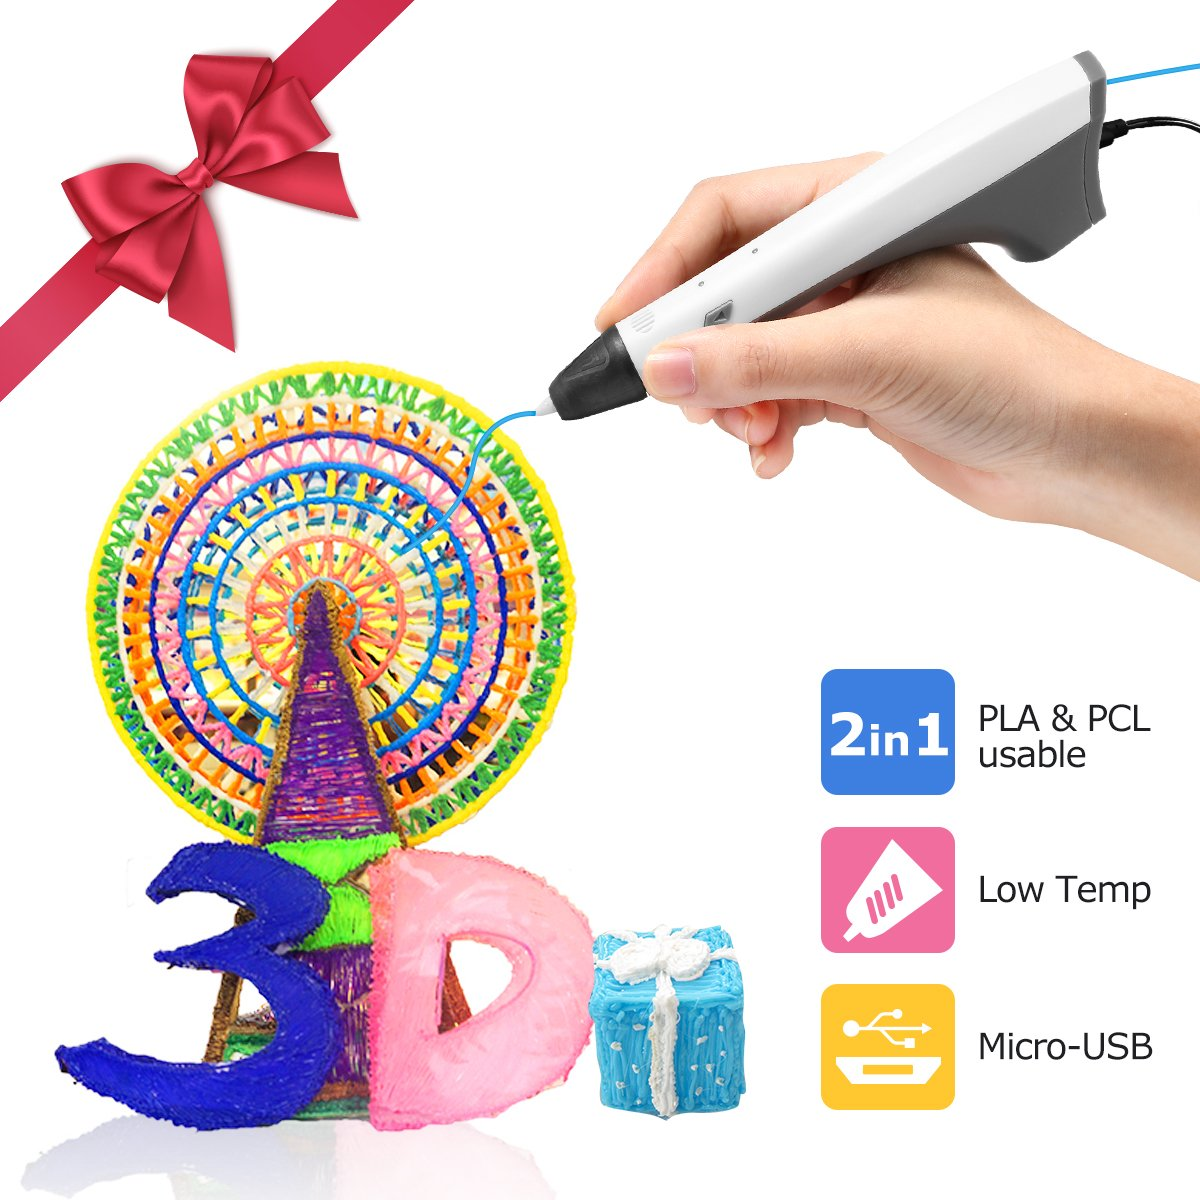 Ailink 3D Printing Pen,Upgrade Intelligent 3D Pen With 1.75mm PLA/PCL Filament,One Button Operation No Burn No Toxic No Clog Gifts for Boys Girls (grey-white)